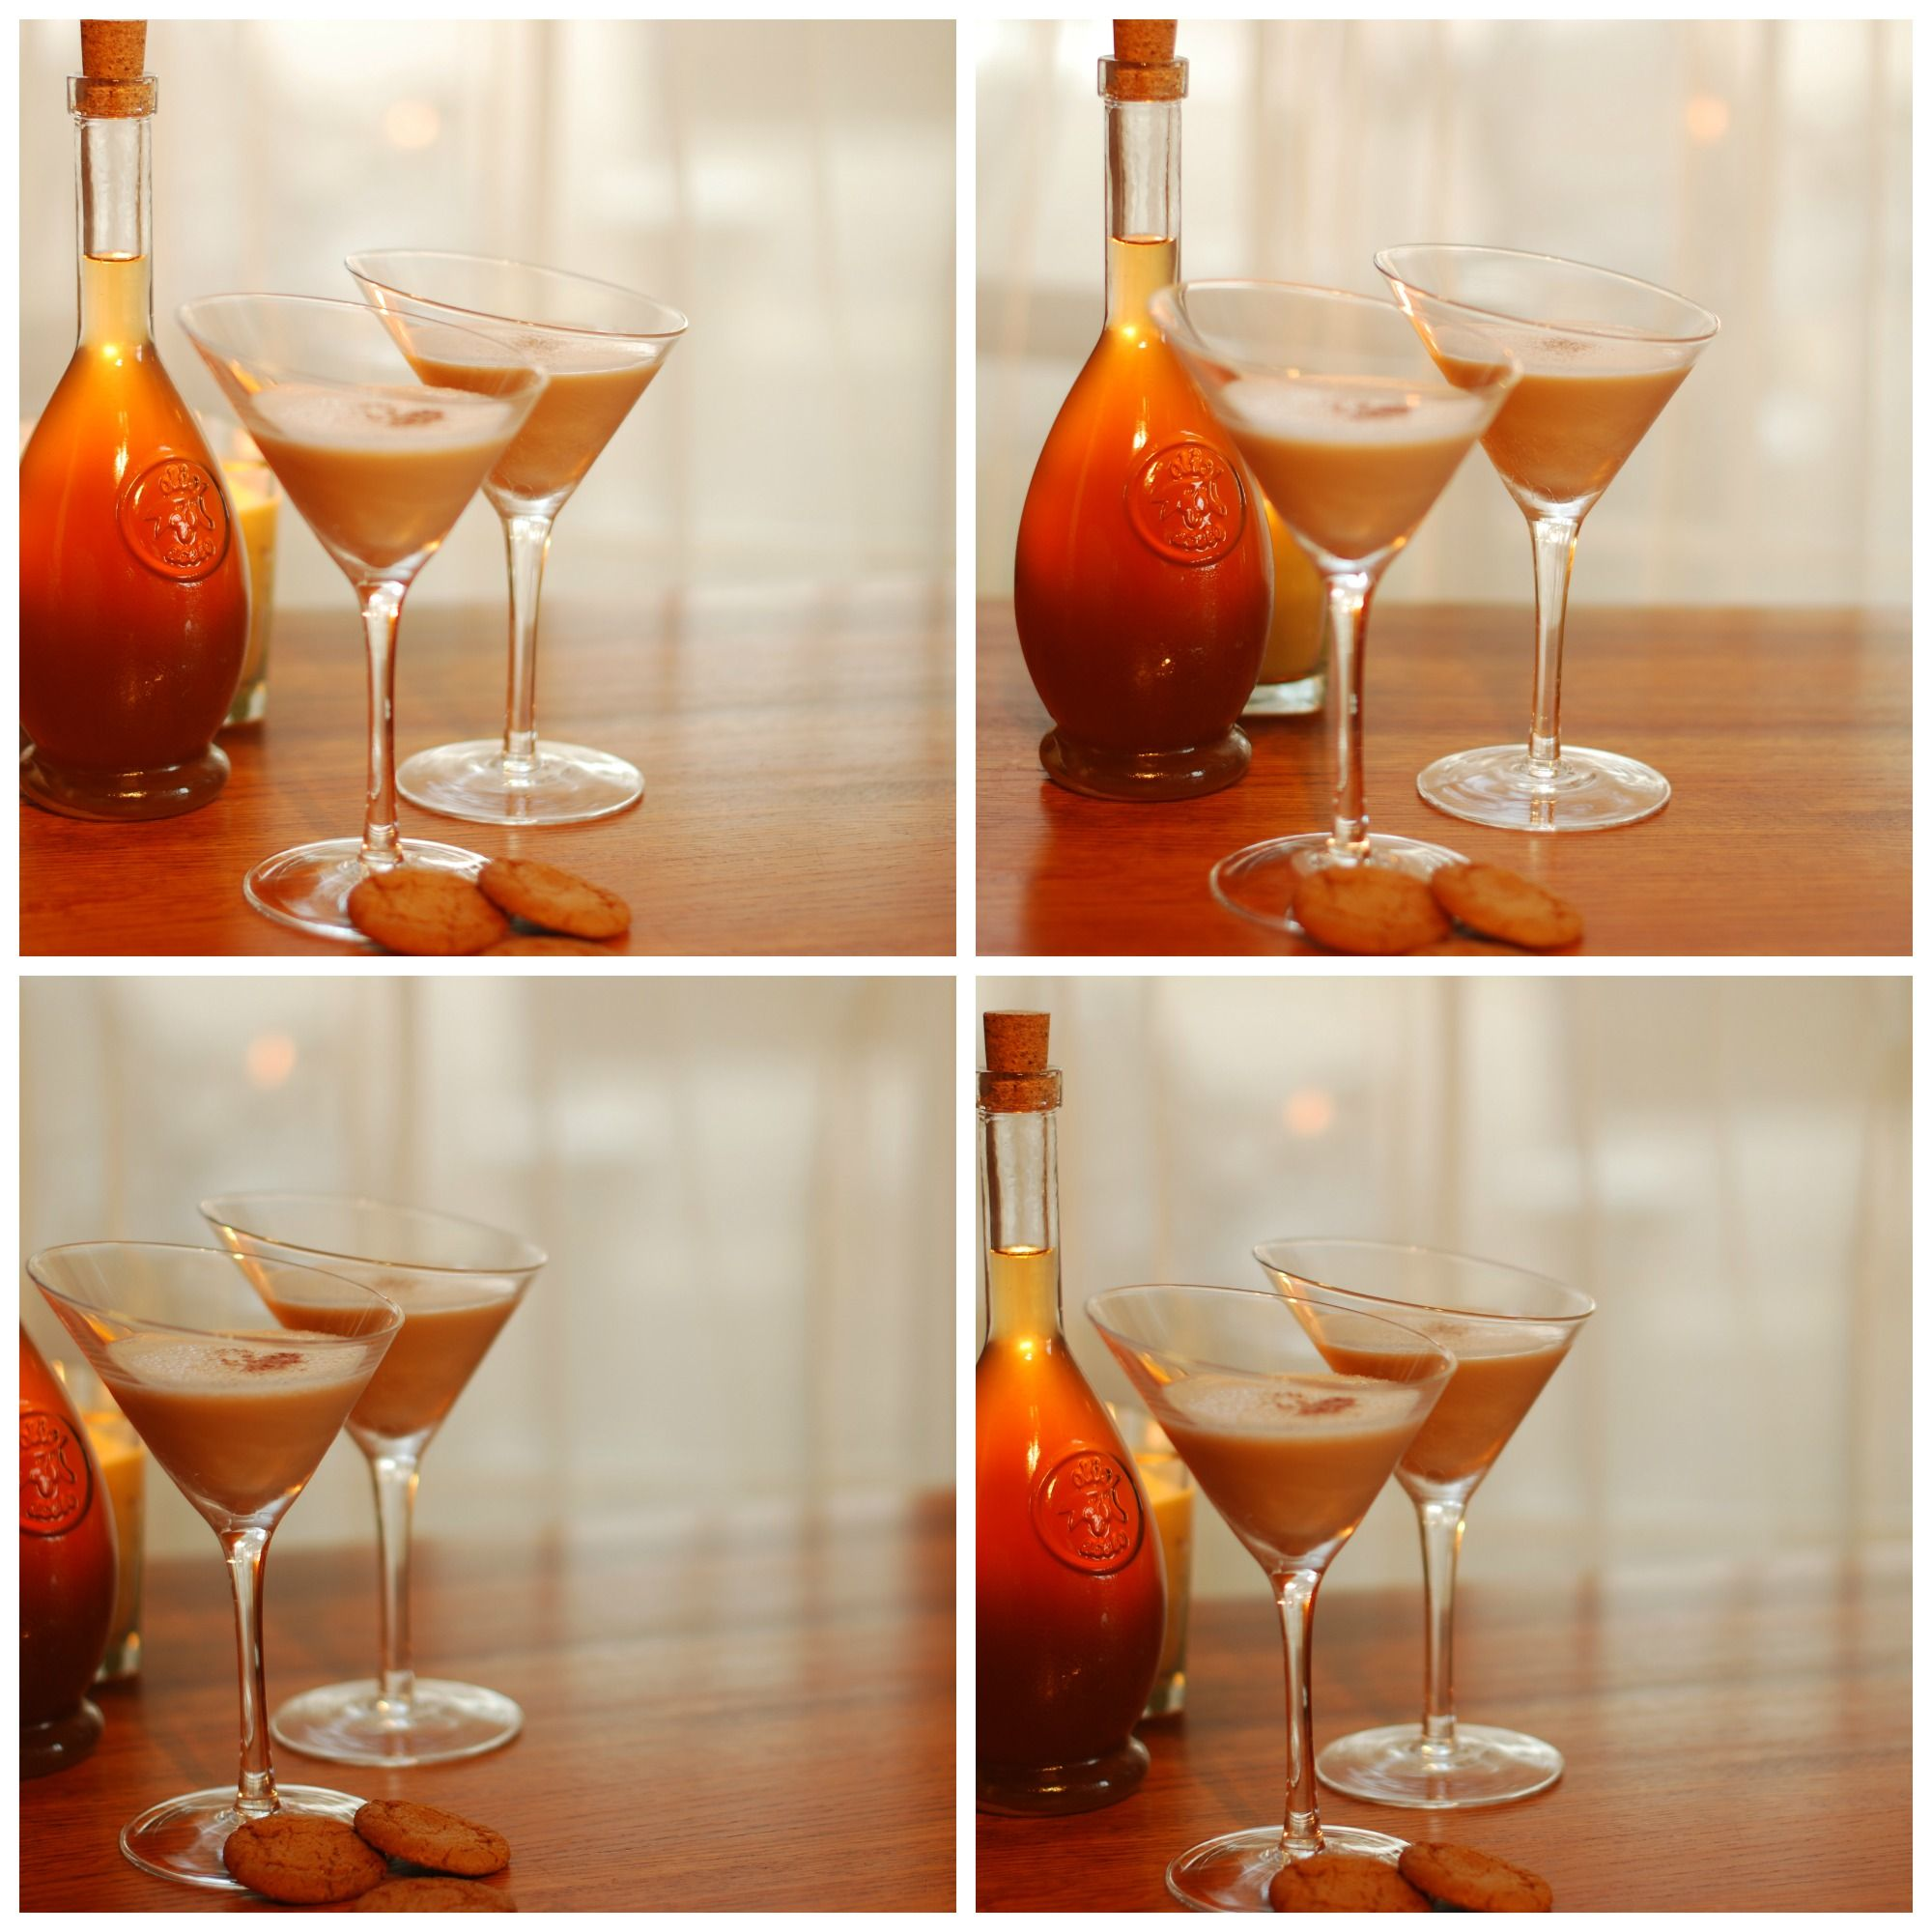 Photos of French Gingerbread Martinis taken at sunset. Recipe available http://www.frenchgingerbread.com/recipe_blog_.html